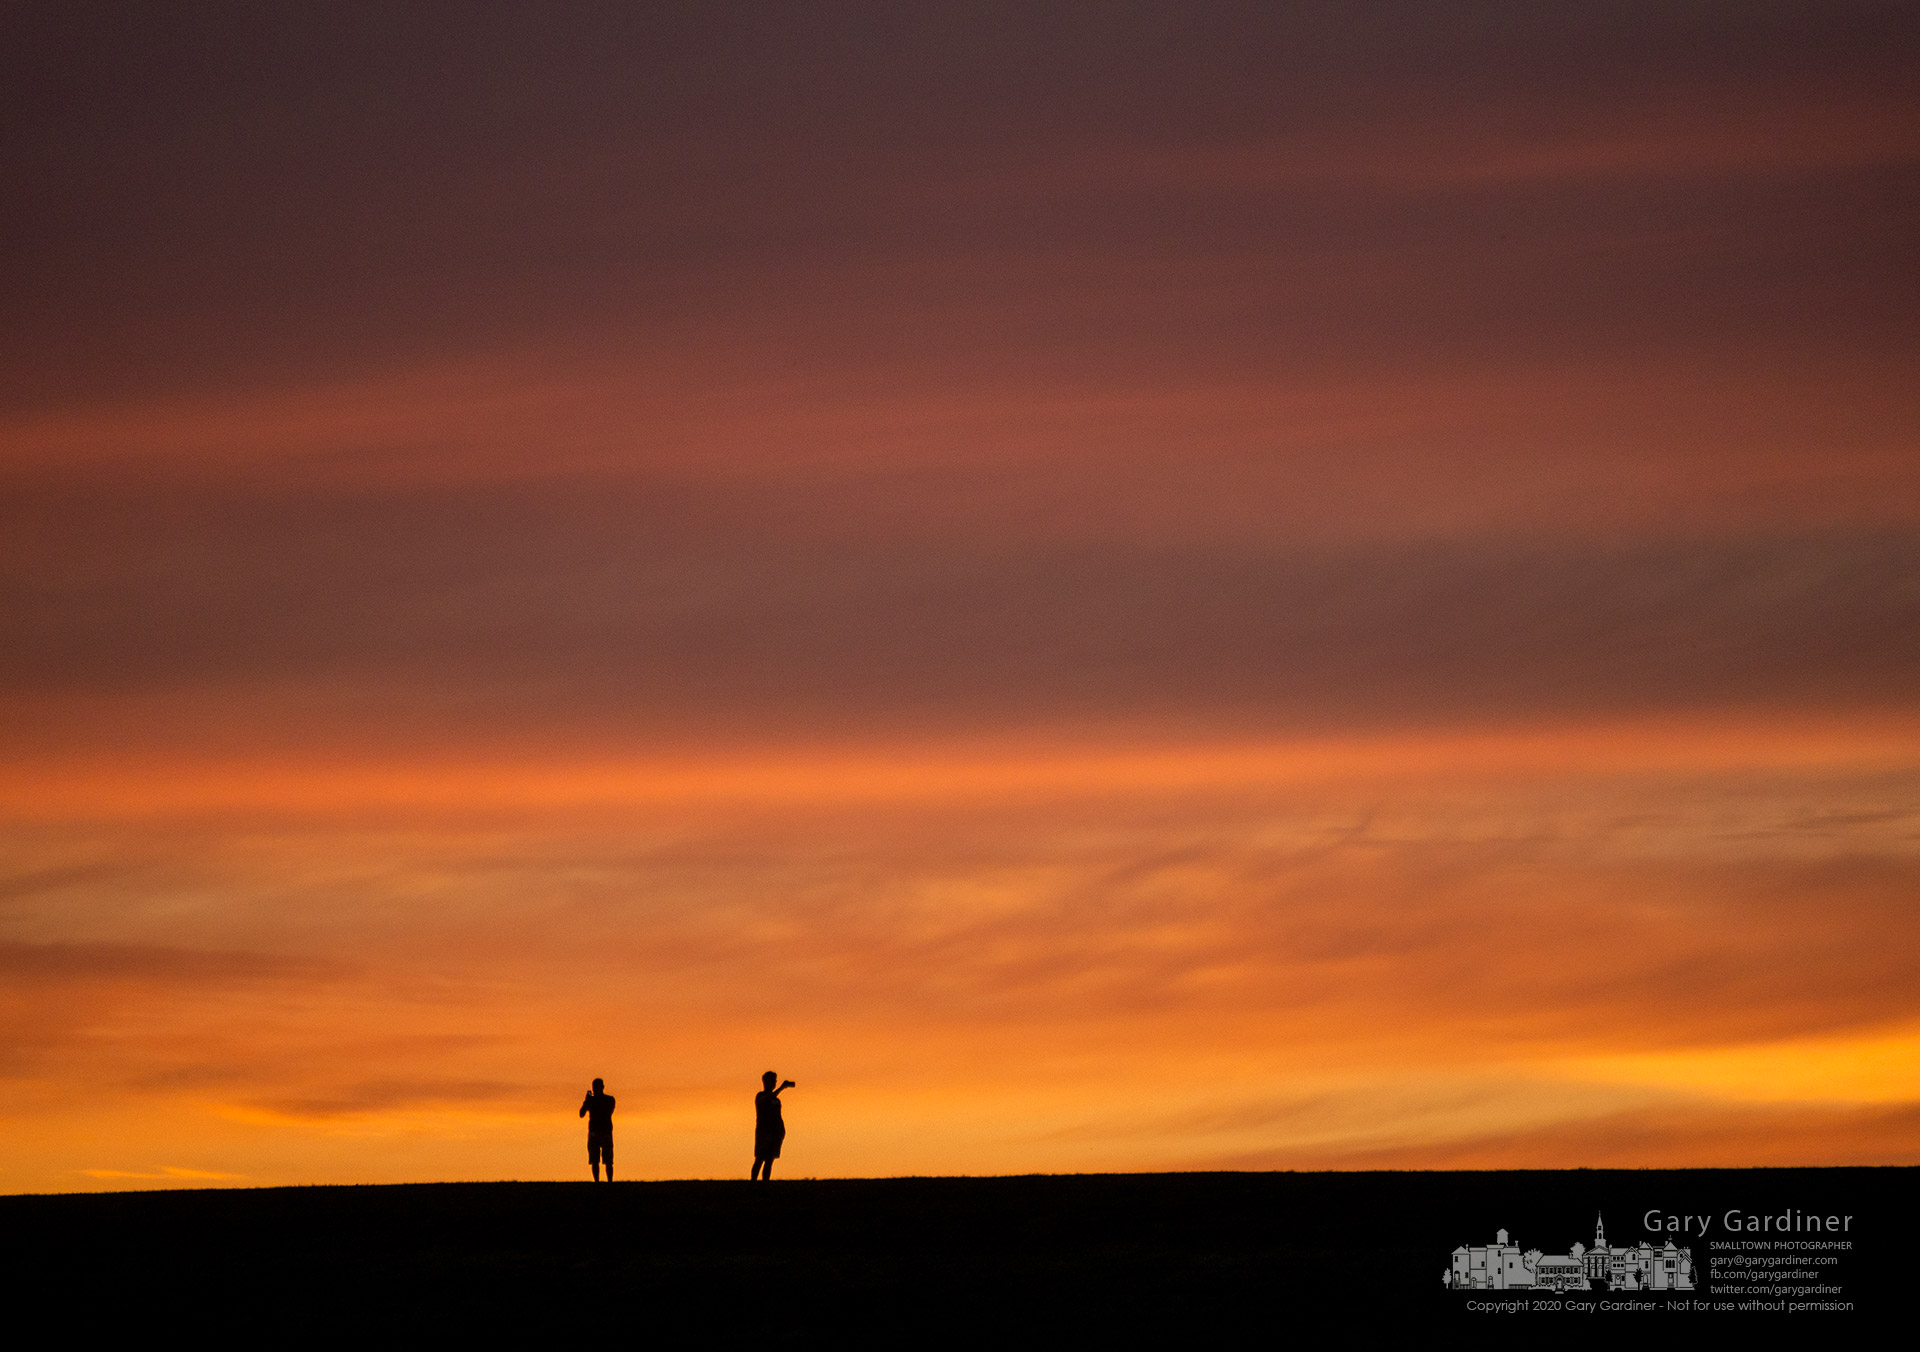 Two men pause during their walk atop the Alum Creek Dam to photograph the sunset across the lake using their phones. My Final Photo for Aug. 30, 2020.